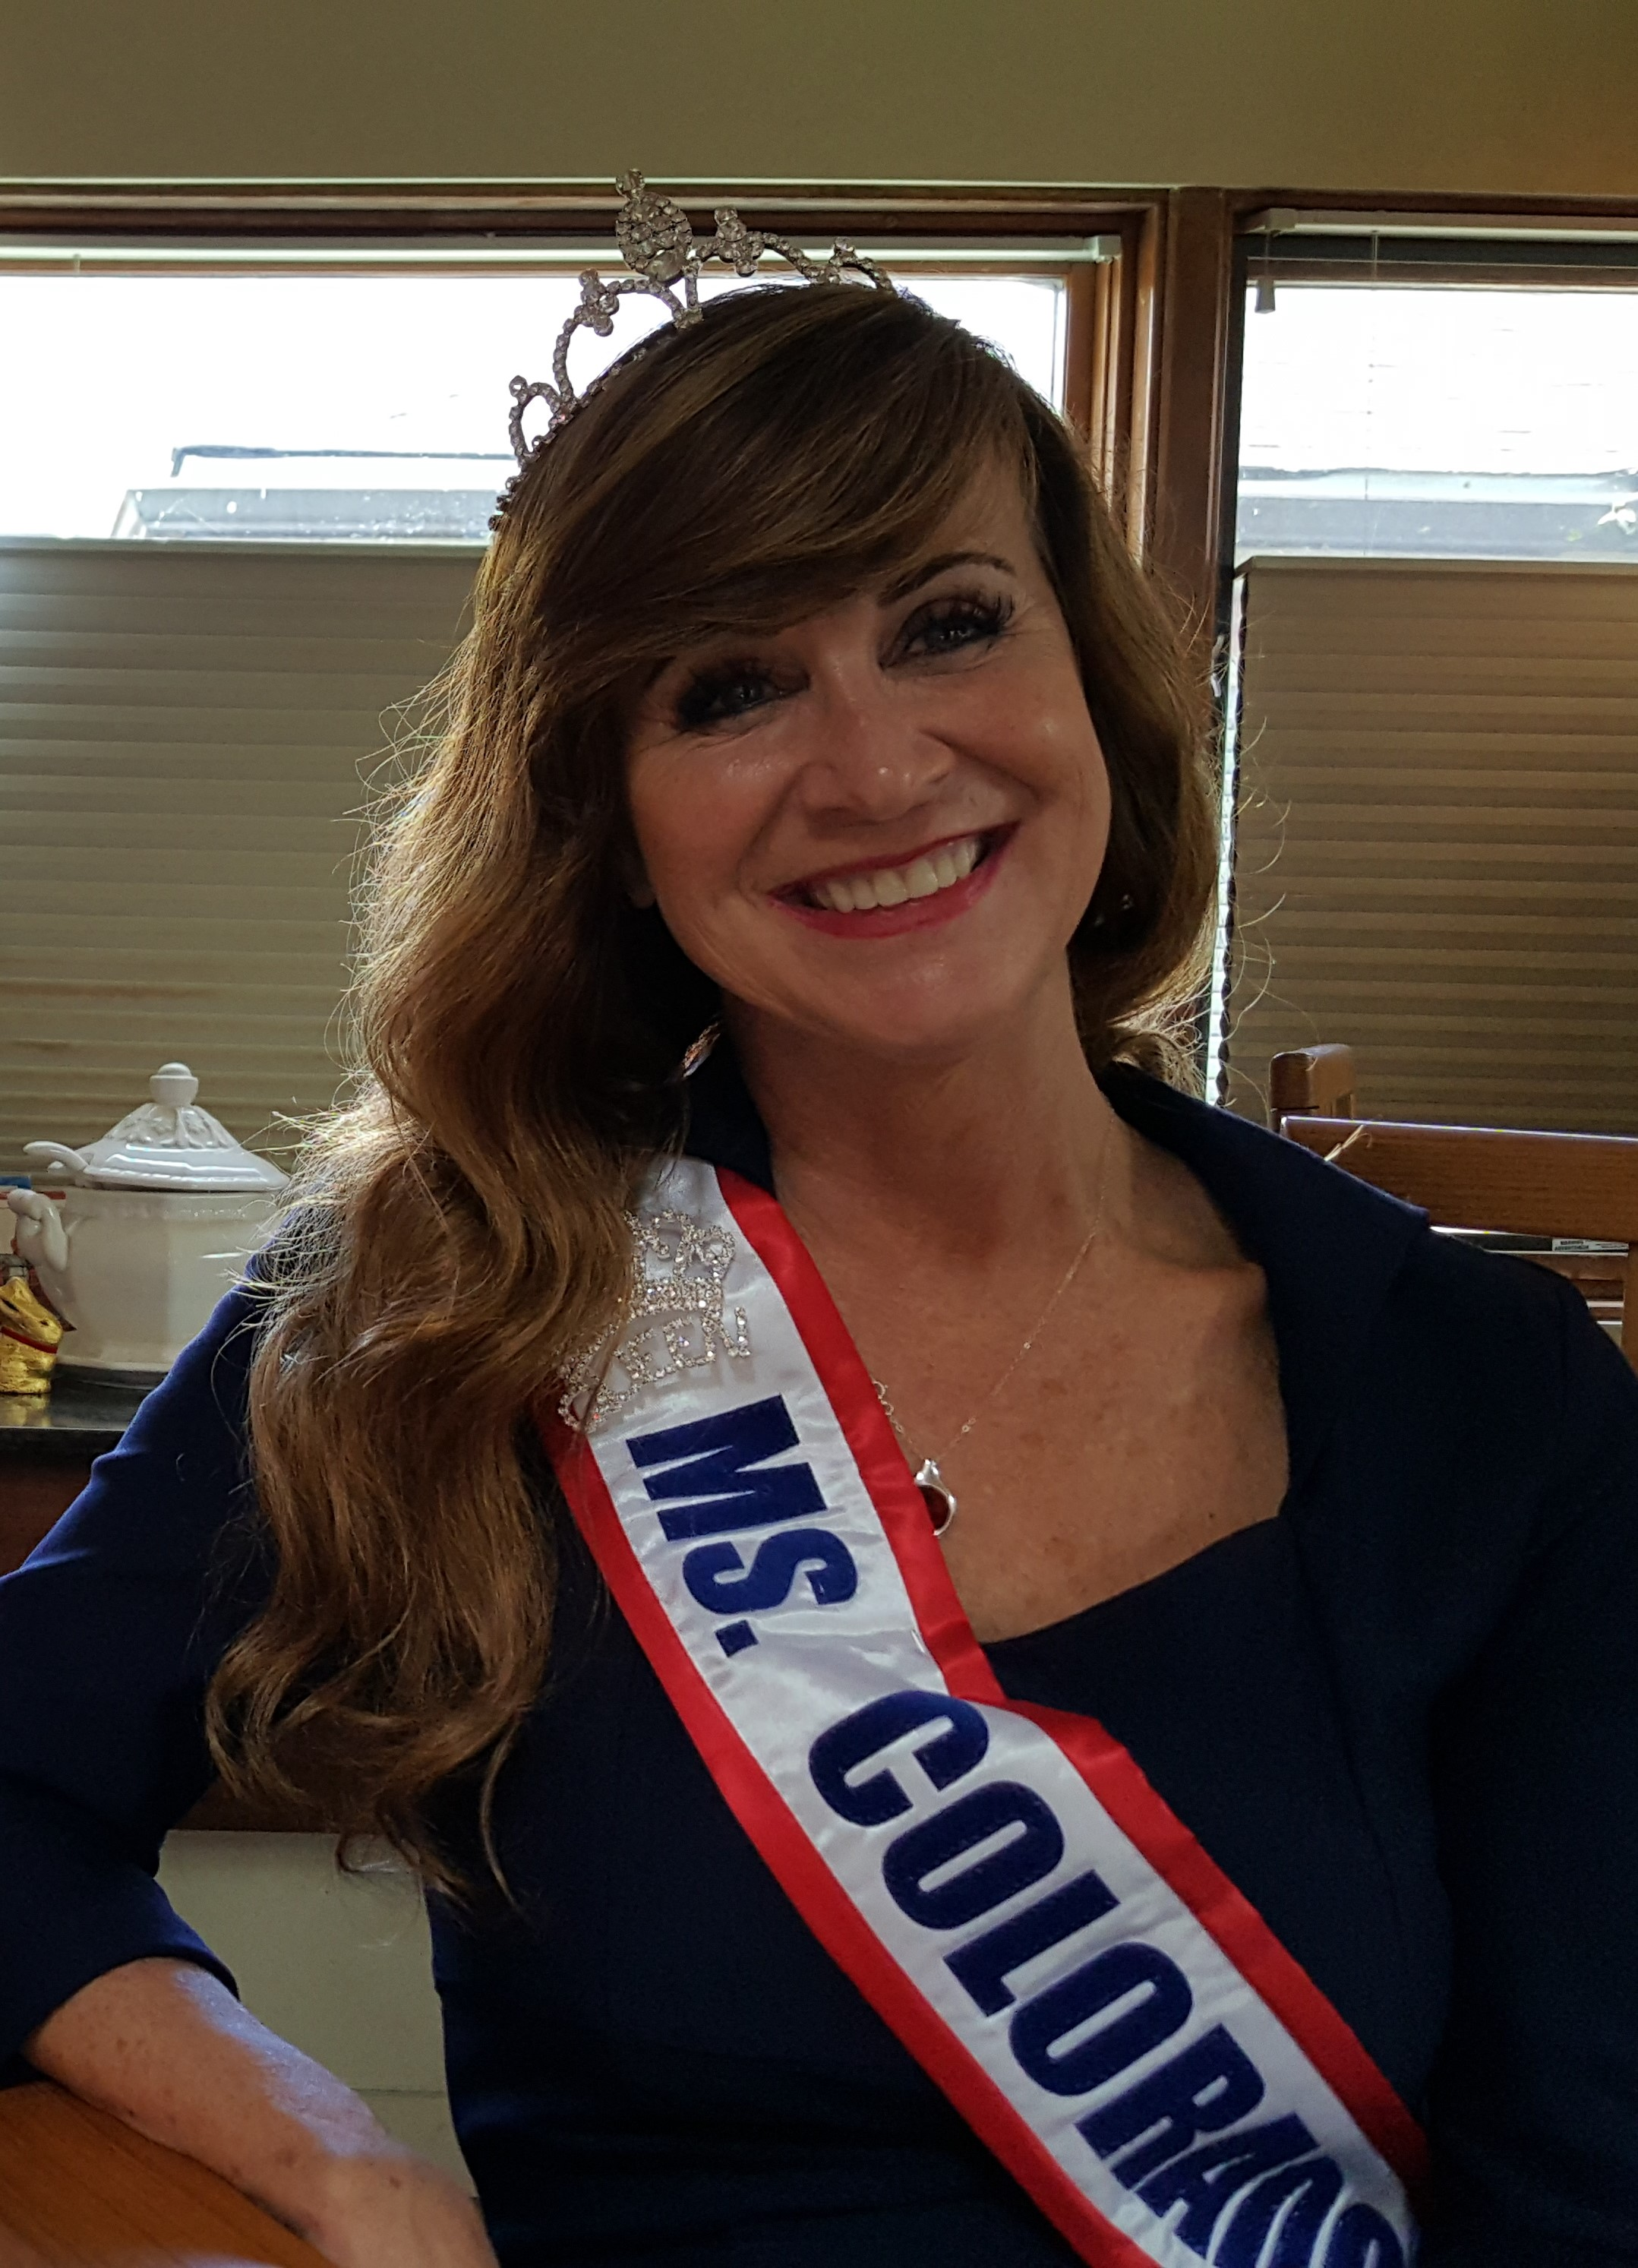 Ms. Colorado Senior Queen for 2019